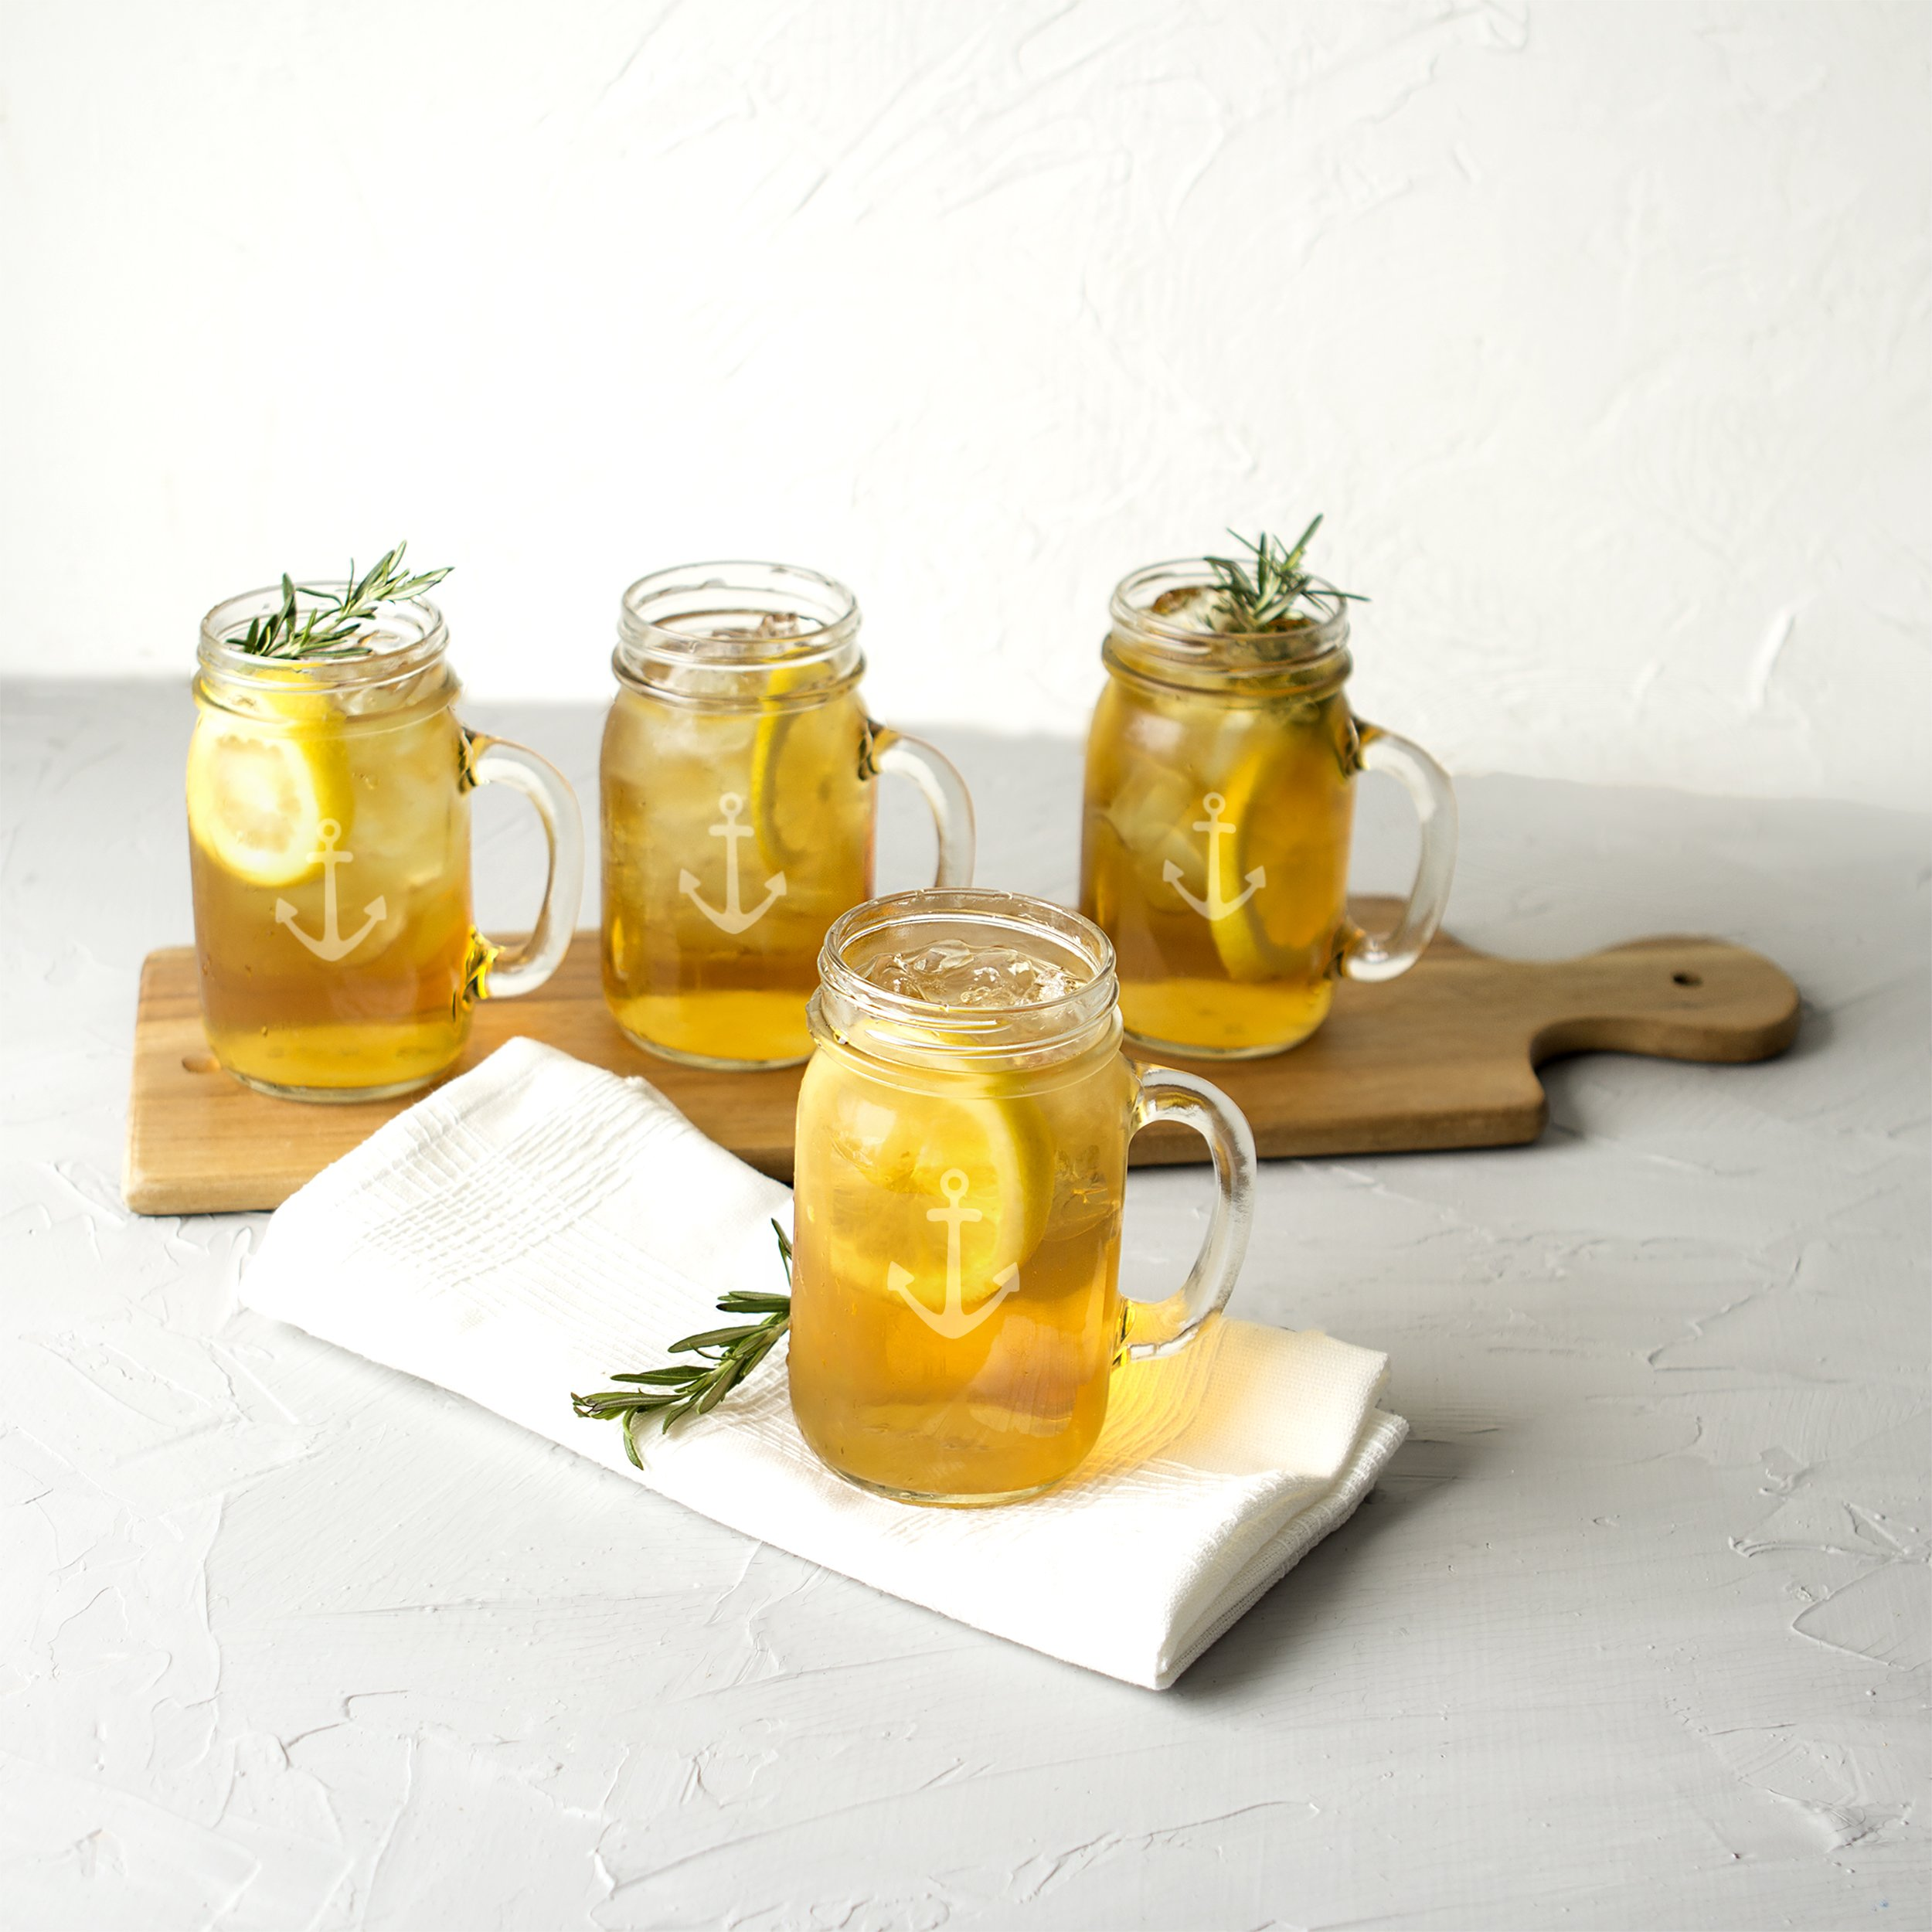 Cathy's Concepts CCA1190 Anchor Old Fashioned Drinking Jars Set Of 4 by Cathy's Concepts (Image #5)